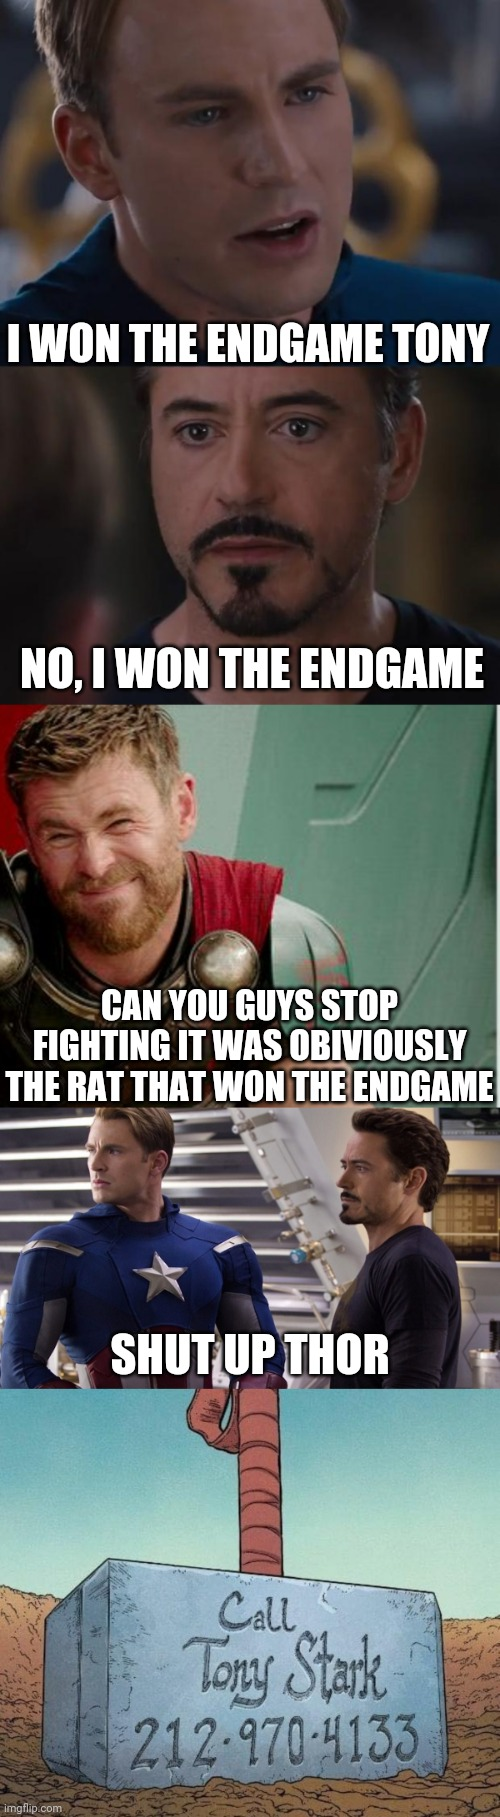 I WON THE ENDGAME TONY; NO, I WON THE ENDGAME; CAN YOU GUYS STOP FIGHTING IT WAS OBIVIOUSLY THE RAT THAT WON THE ENDGAME; SHUT UP THOR | image tagged in memes,funny,avengers endgame,marvel,thor,captain america civil war | made w/ Imgflip meme maker